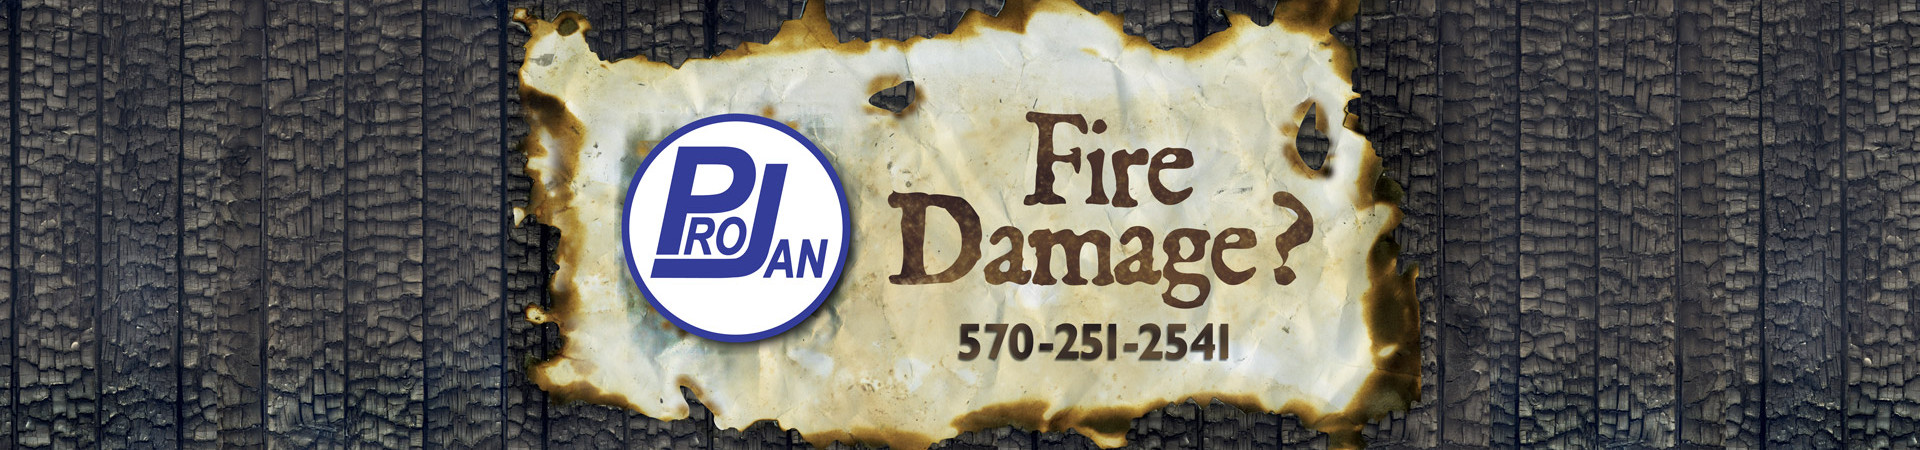 ProJan Fire Damage Restoration